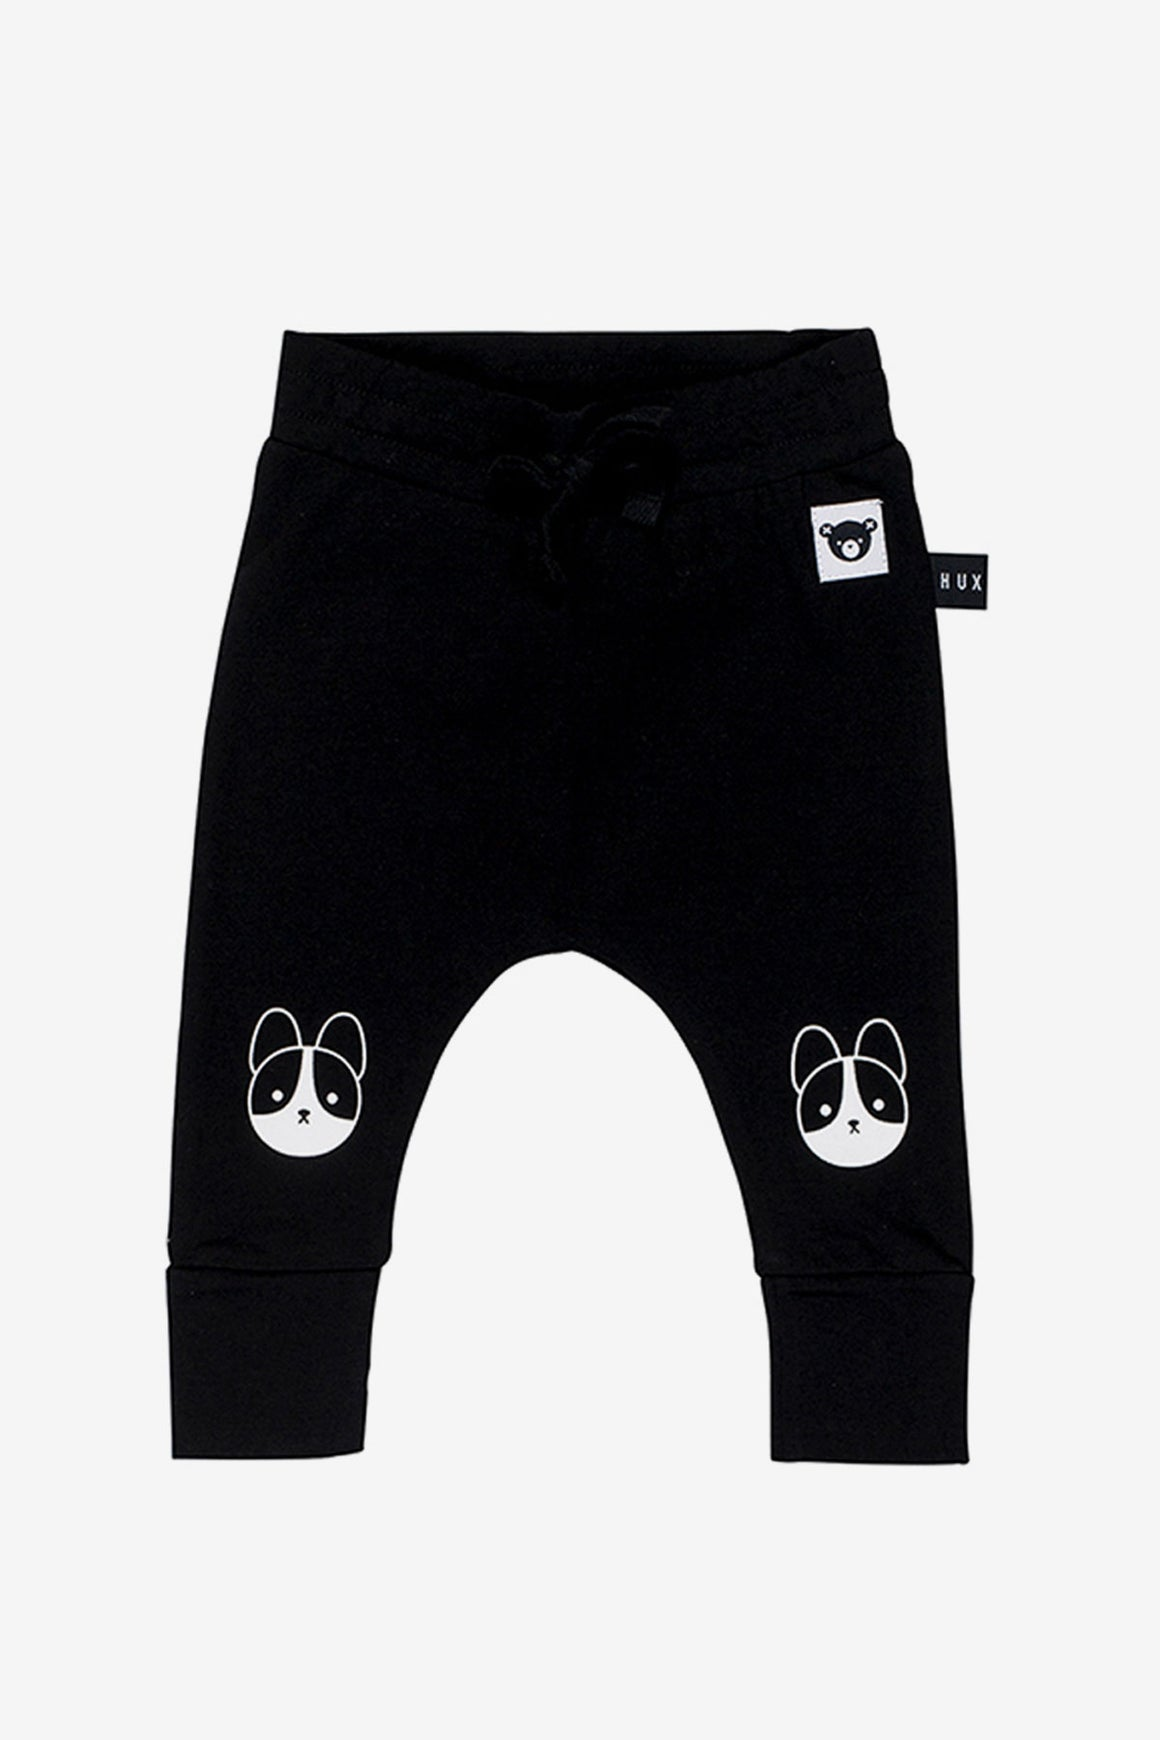 Huxbaby Frenchie Pant